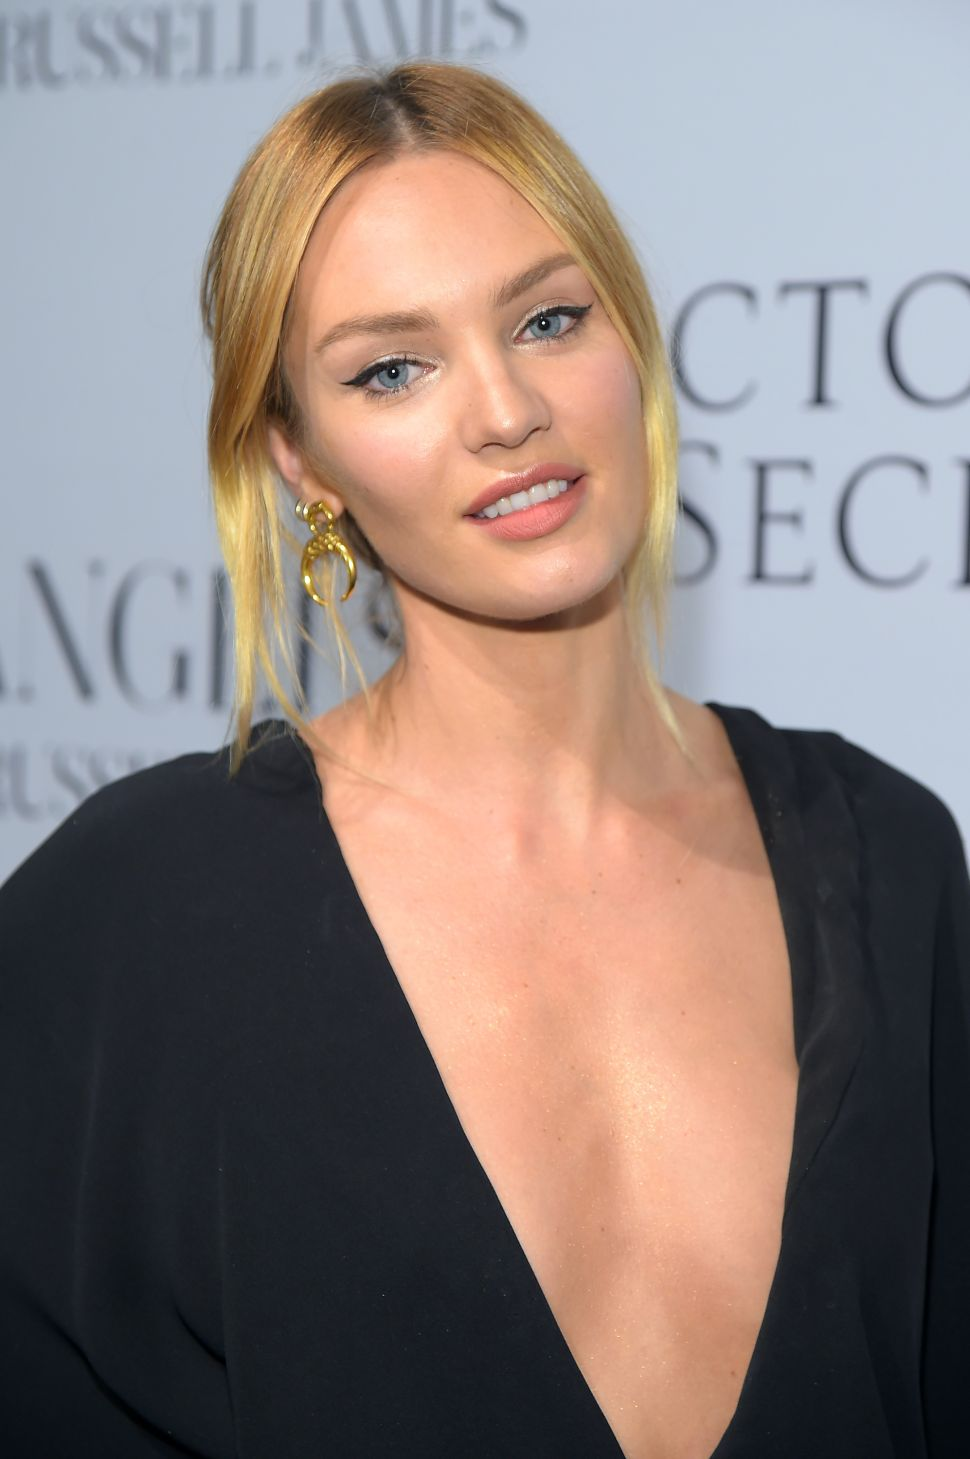 Victoria's Secret Angel Candice Swanepoel Lists East Village Penthouse